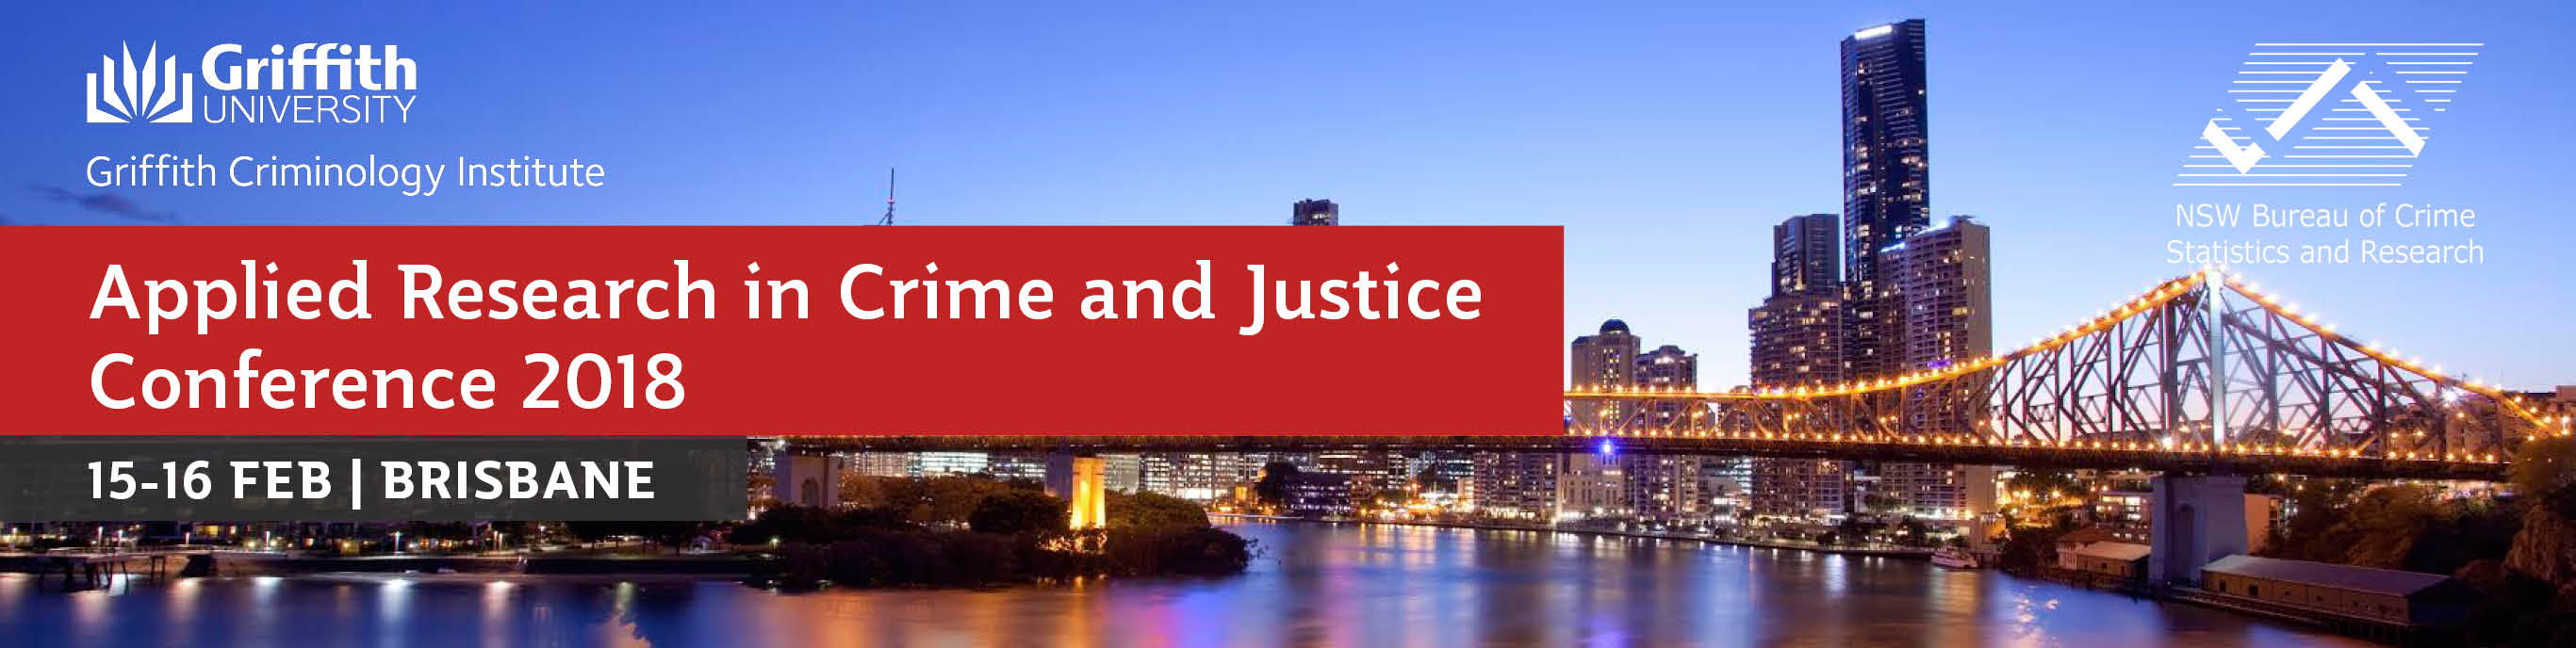 2018 Applied Research in Crime and Justice Conference